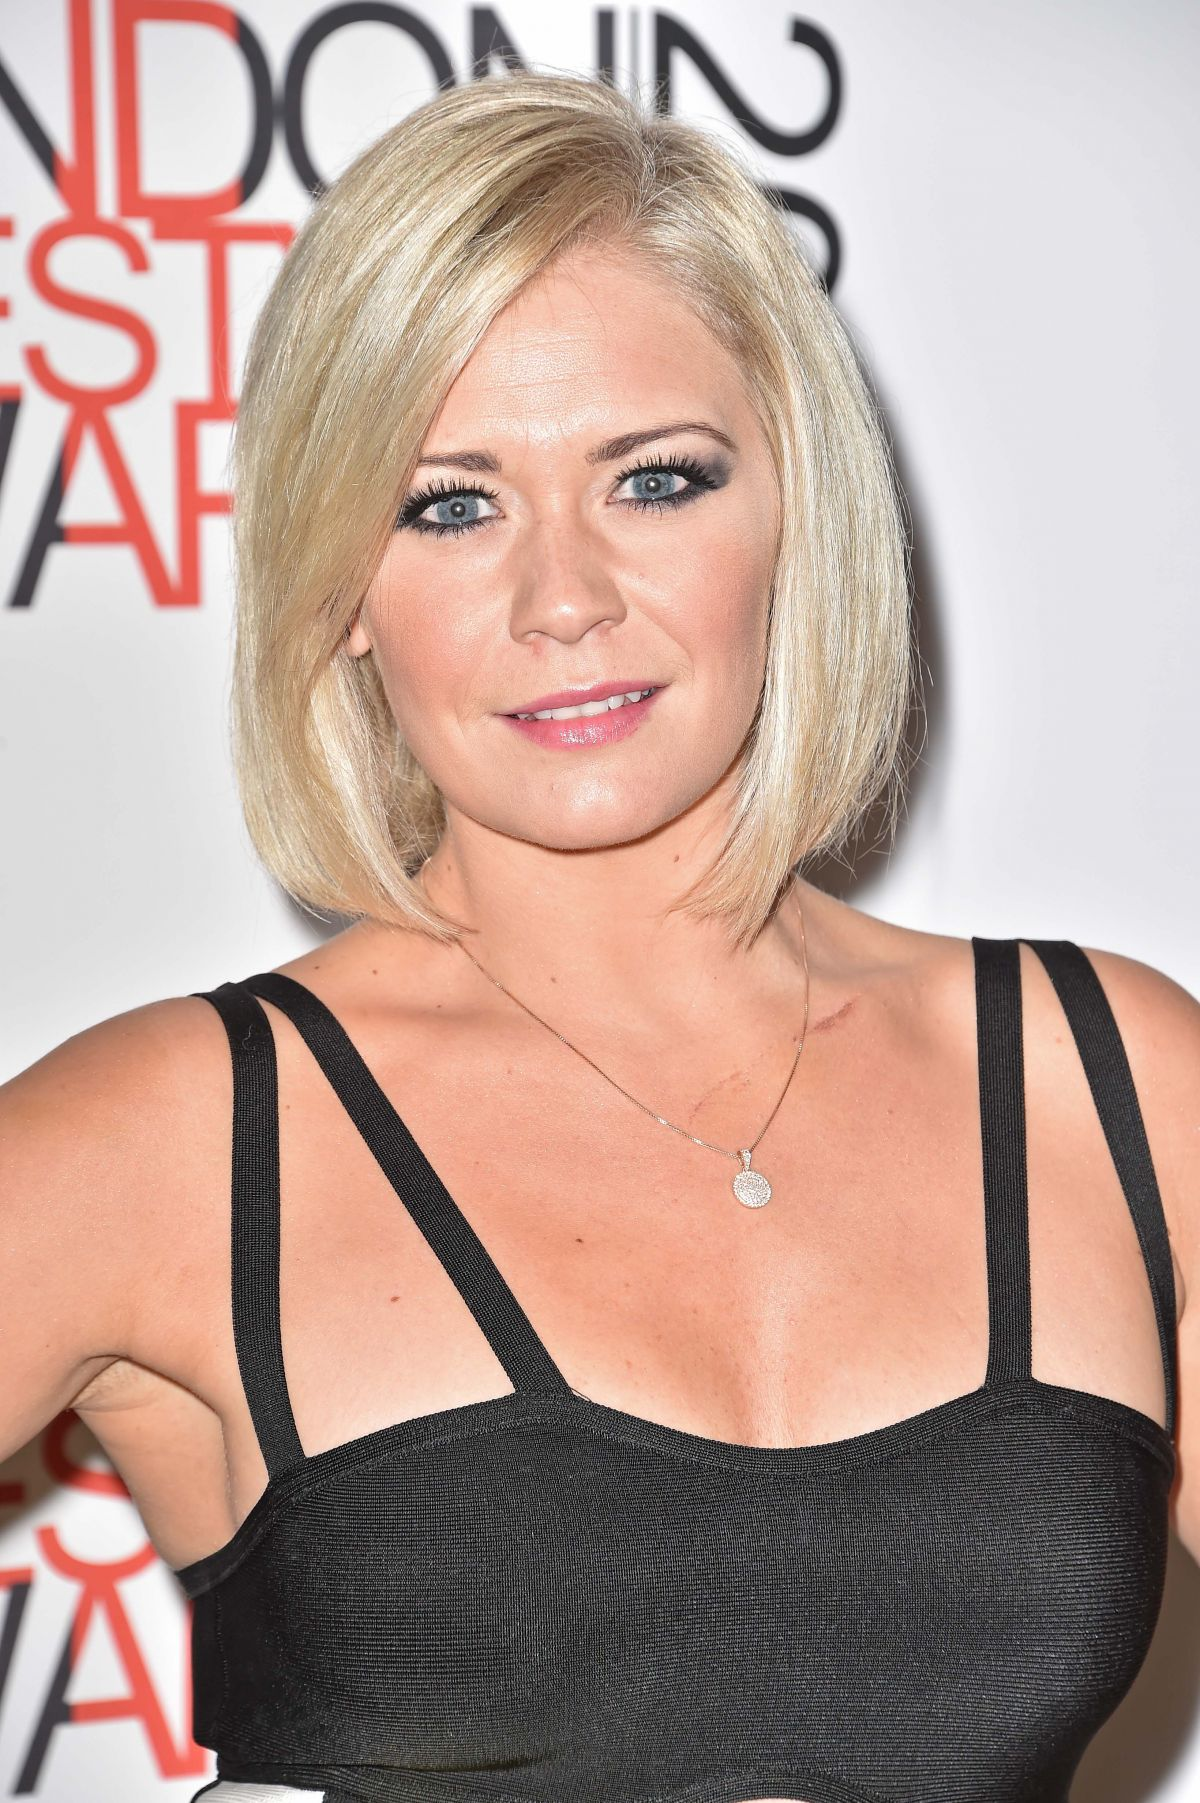 SUZANNE SHAW at London Lifestyle Awards 2014